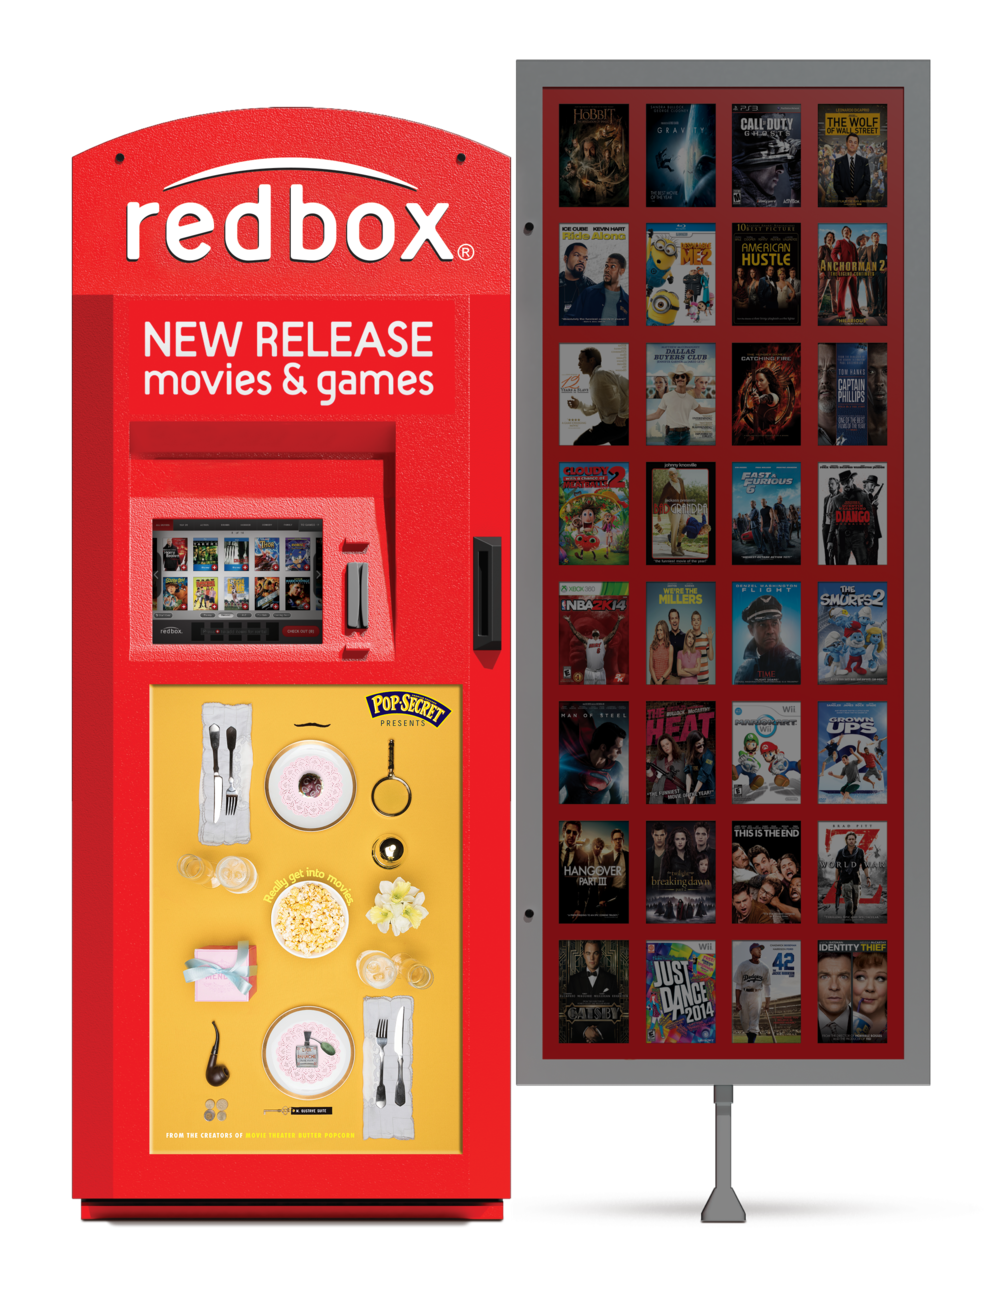 redboxpopsshadow.png